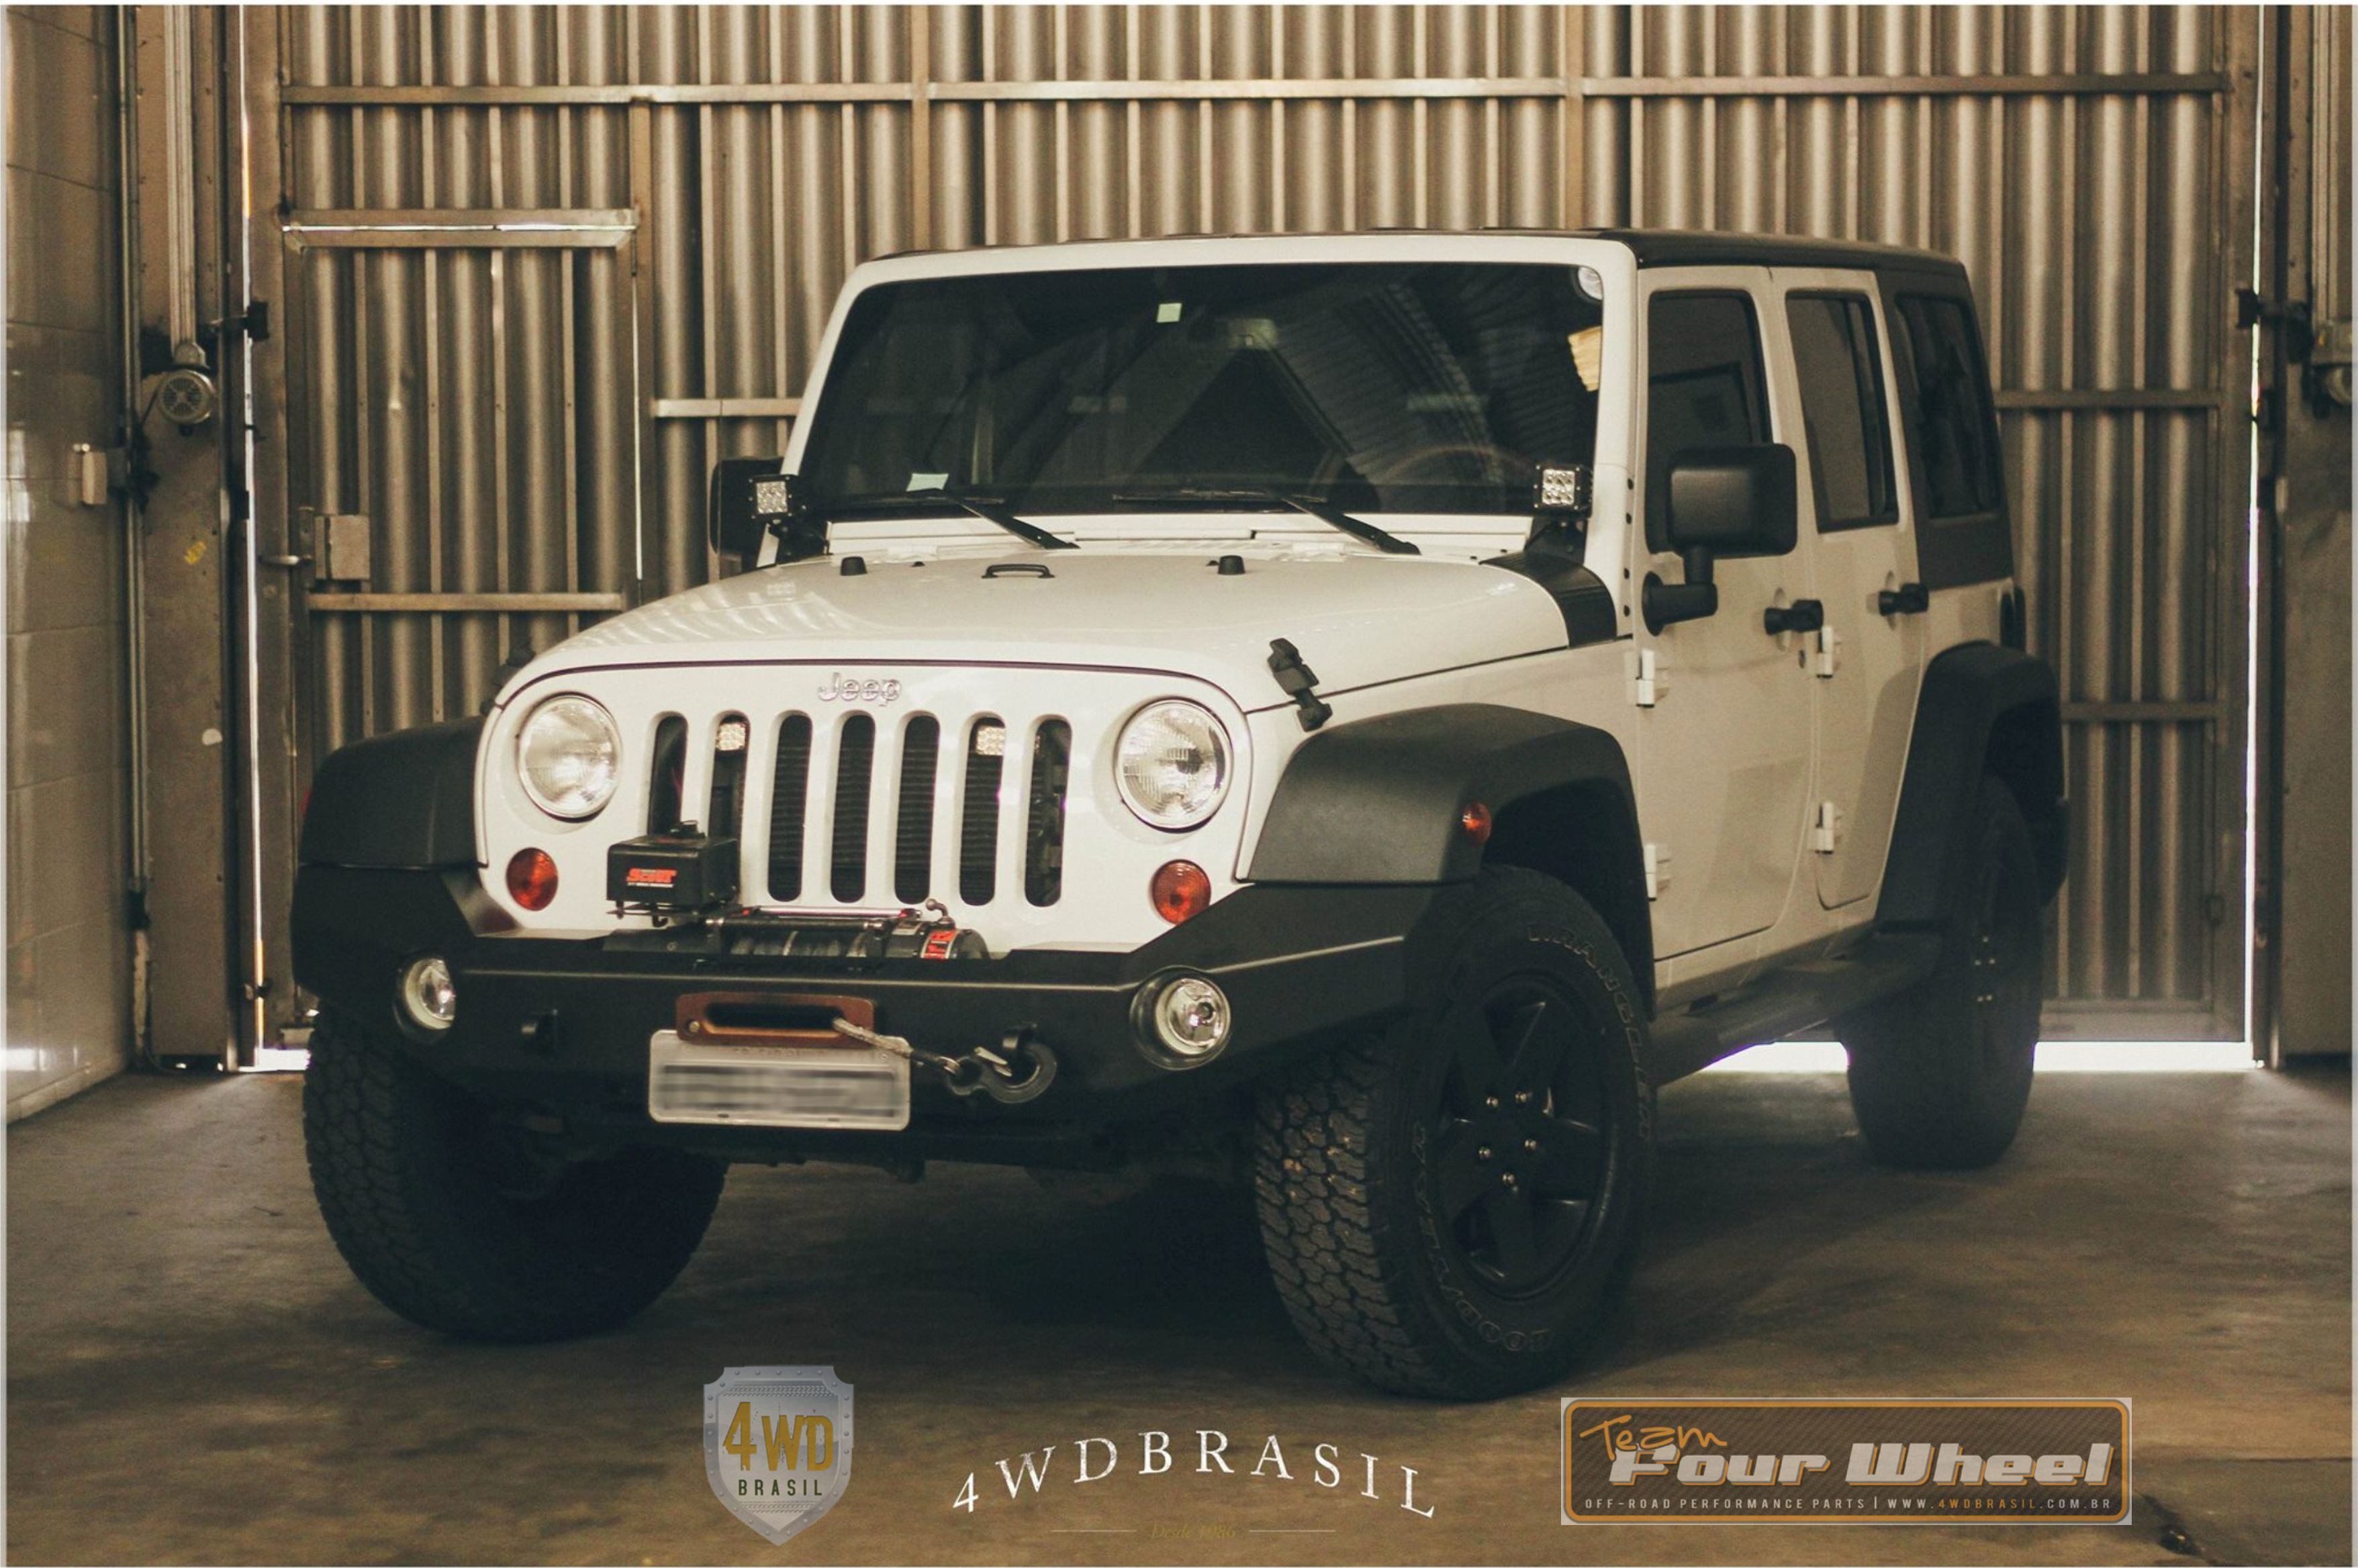 4wd Brasil Acess Rios Para Off Road De Alta Performance